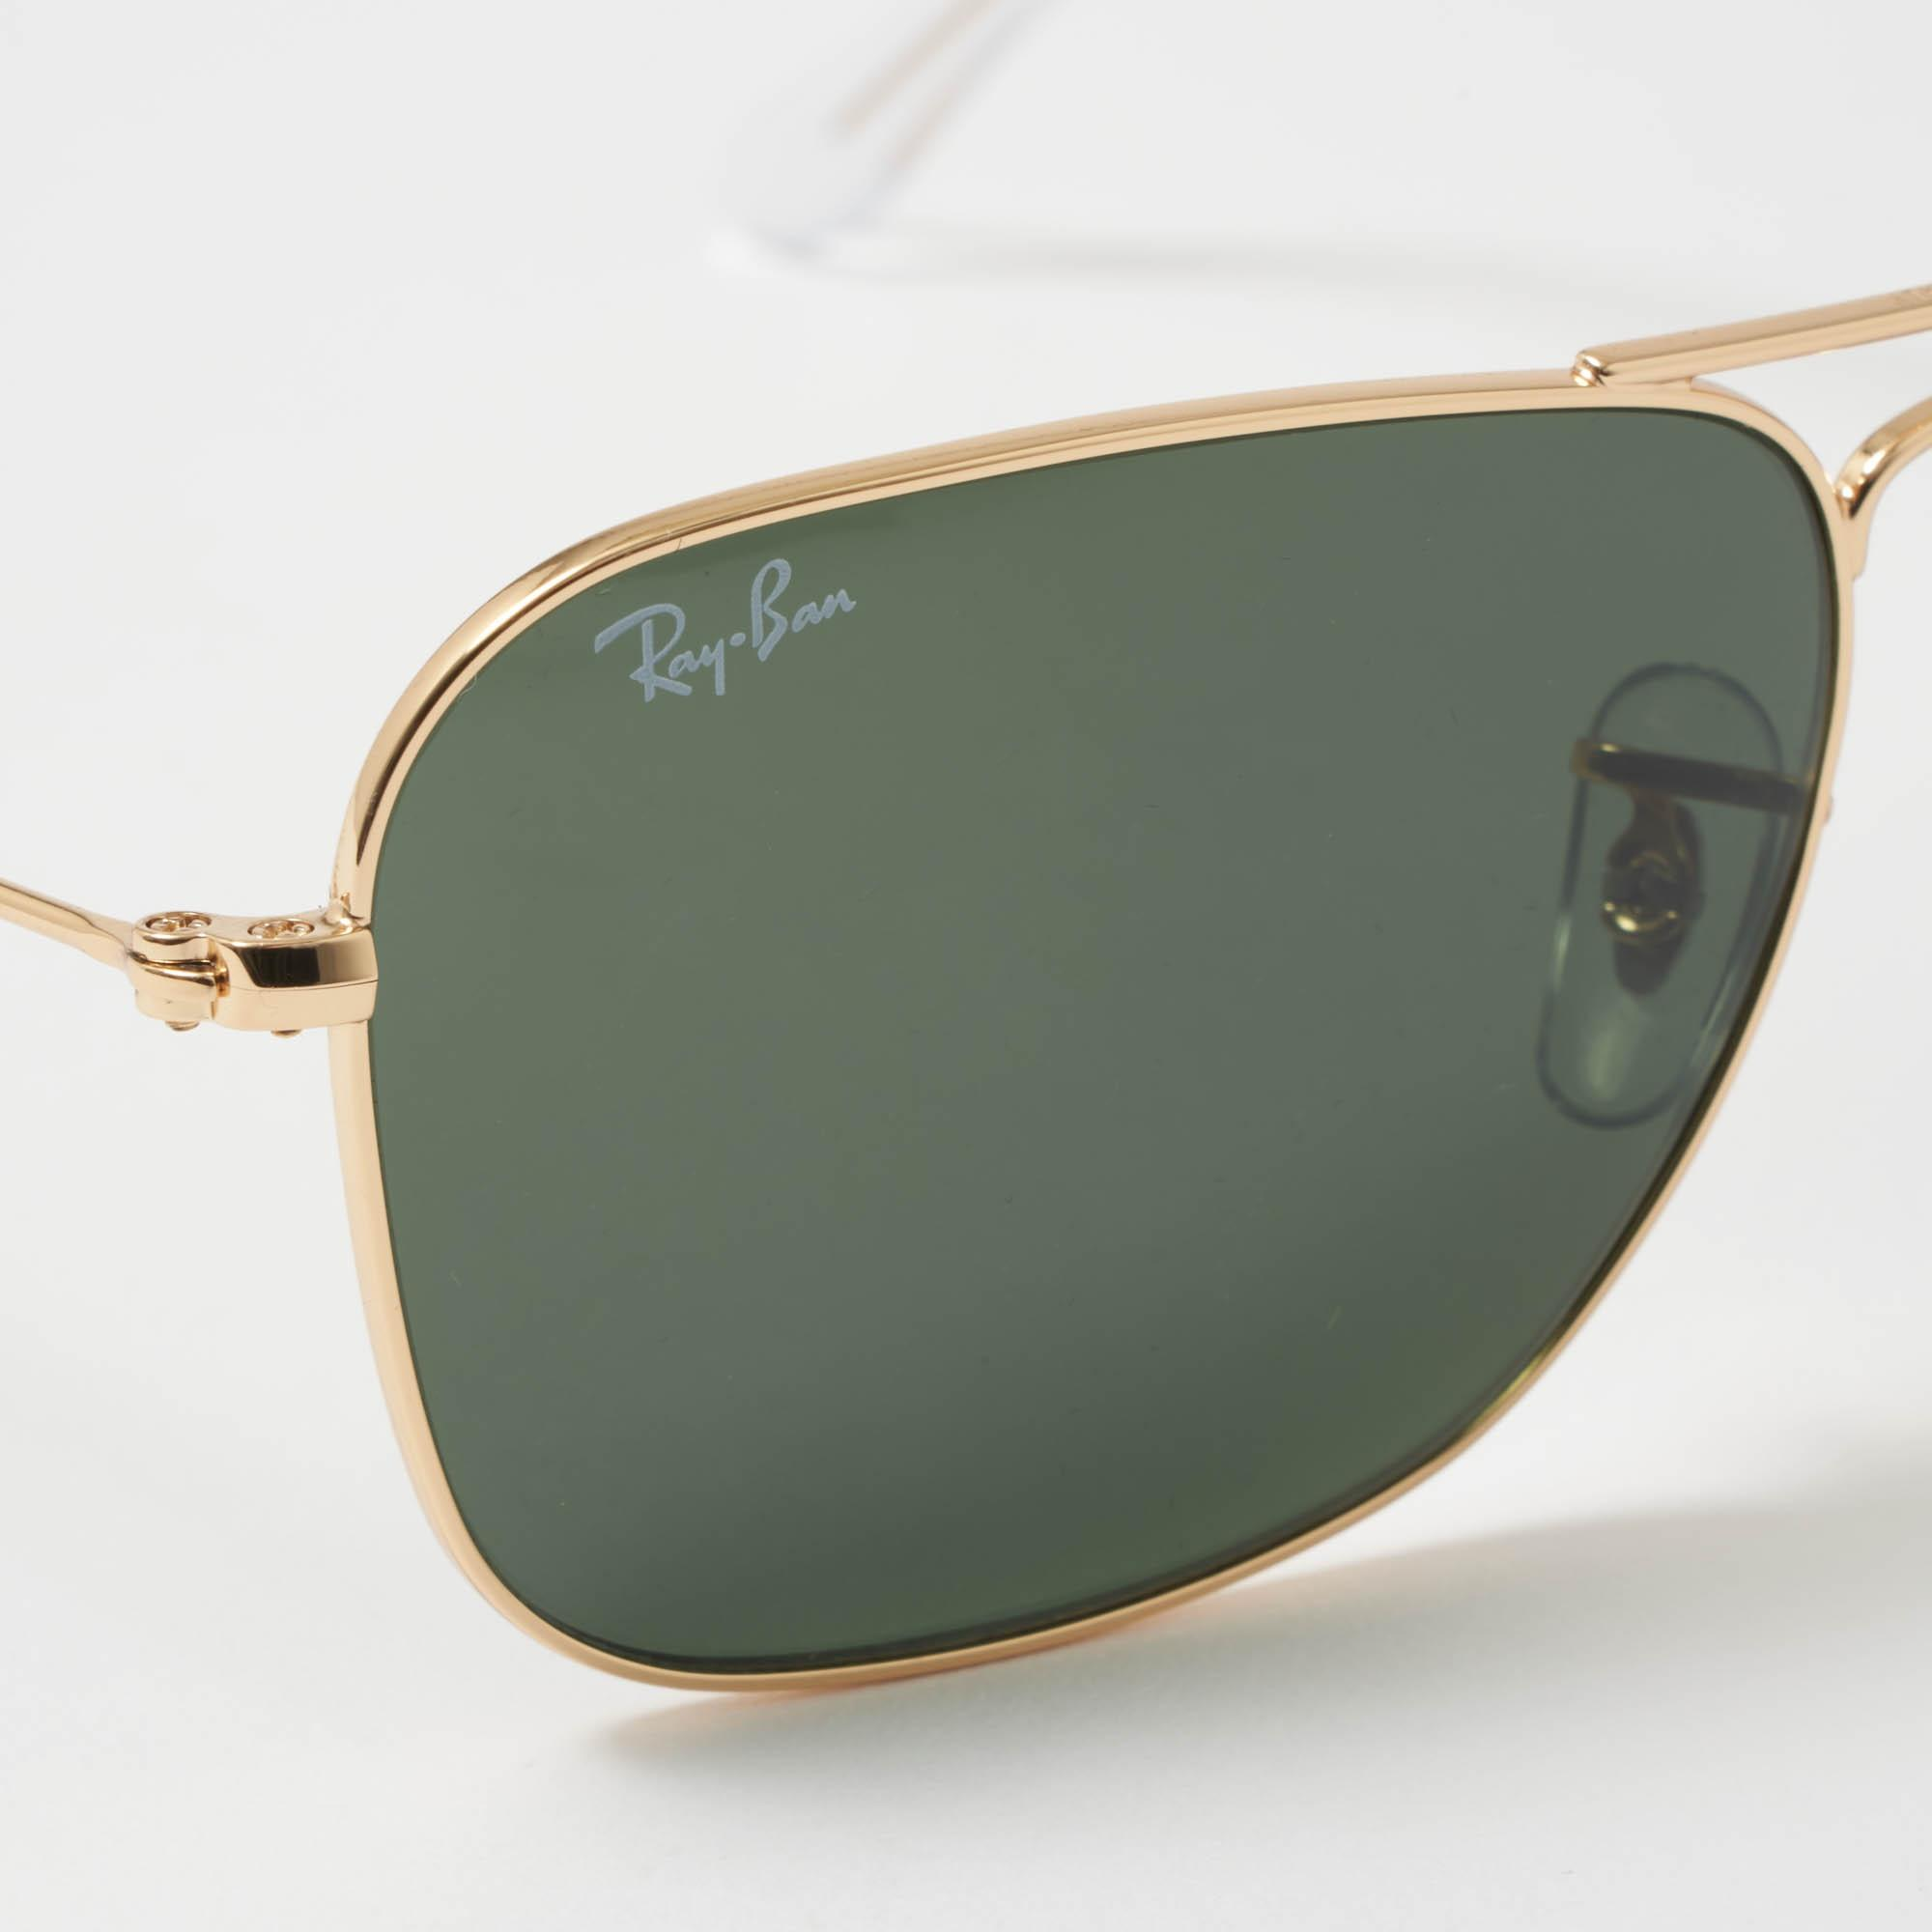 78a62c2d7e Ray-Ban - Metallic Gold Caravan Sunglasses - Green Classic G-15 Lenses for.  View fullscreen